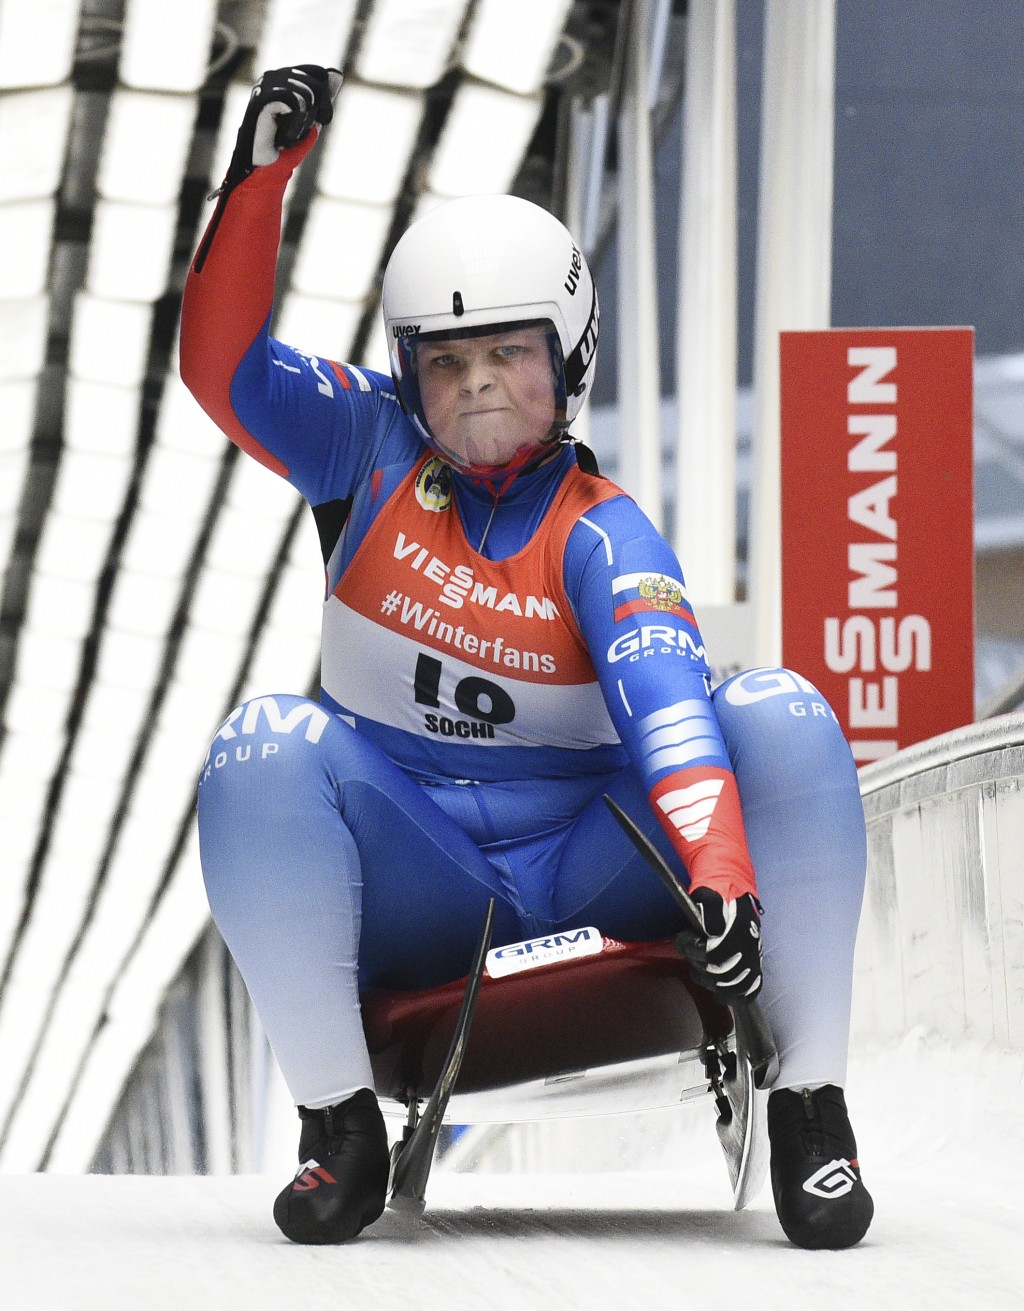 Viktoriia Demchenko of Russia reacts after finishing in women competition at the Luge World Cup 2018/2019 in Sochi, Russia, Saturday, Feb. 23, 2019. (